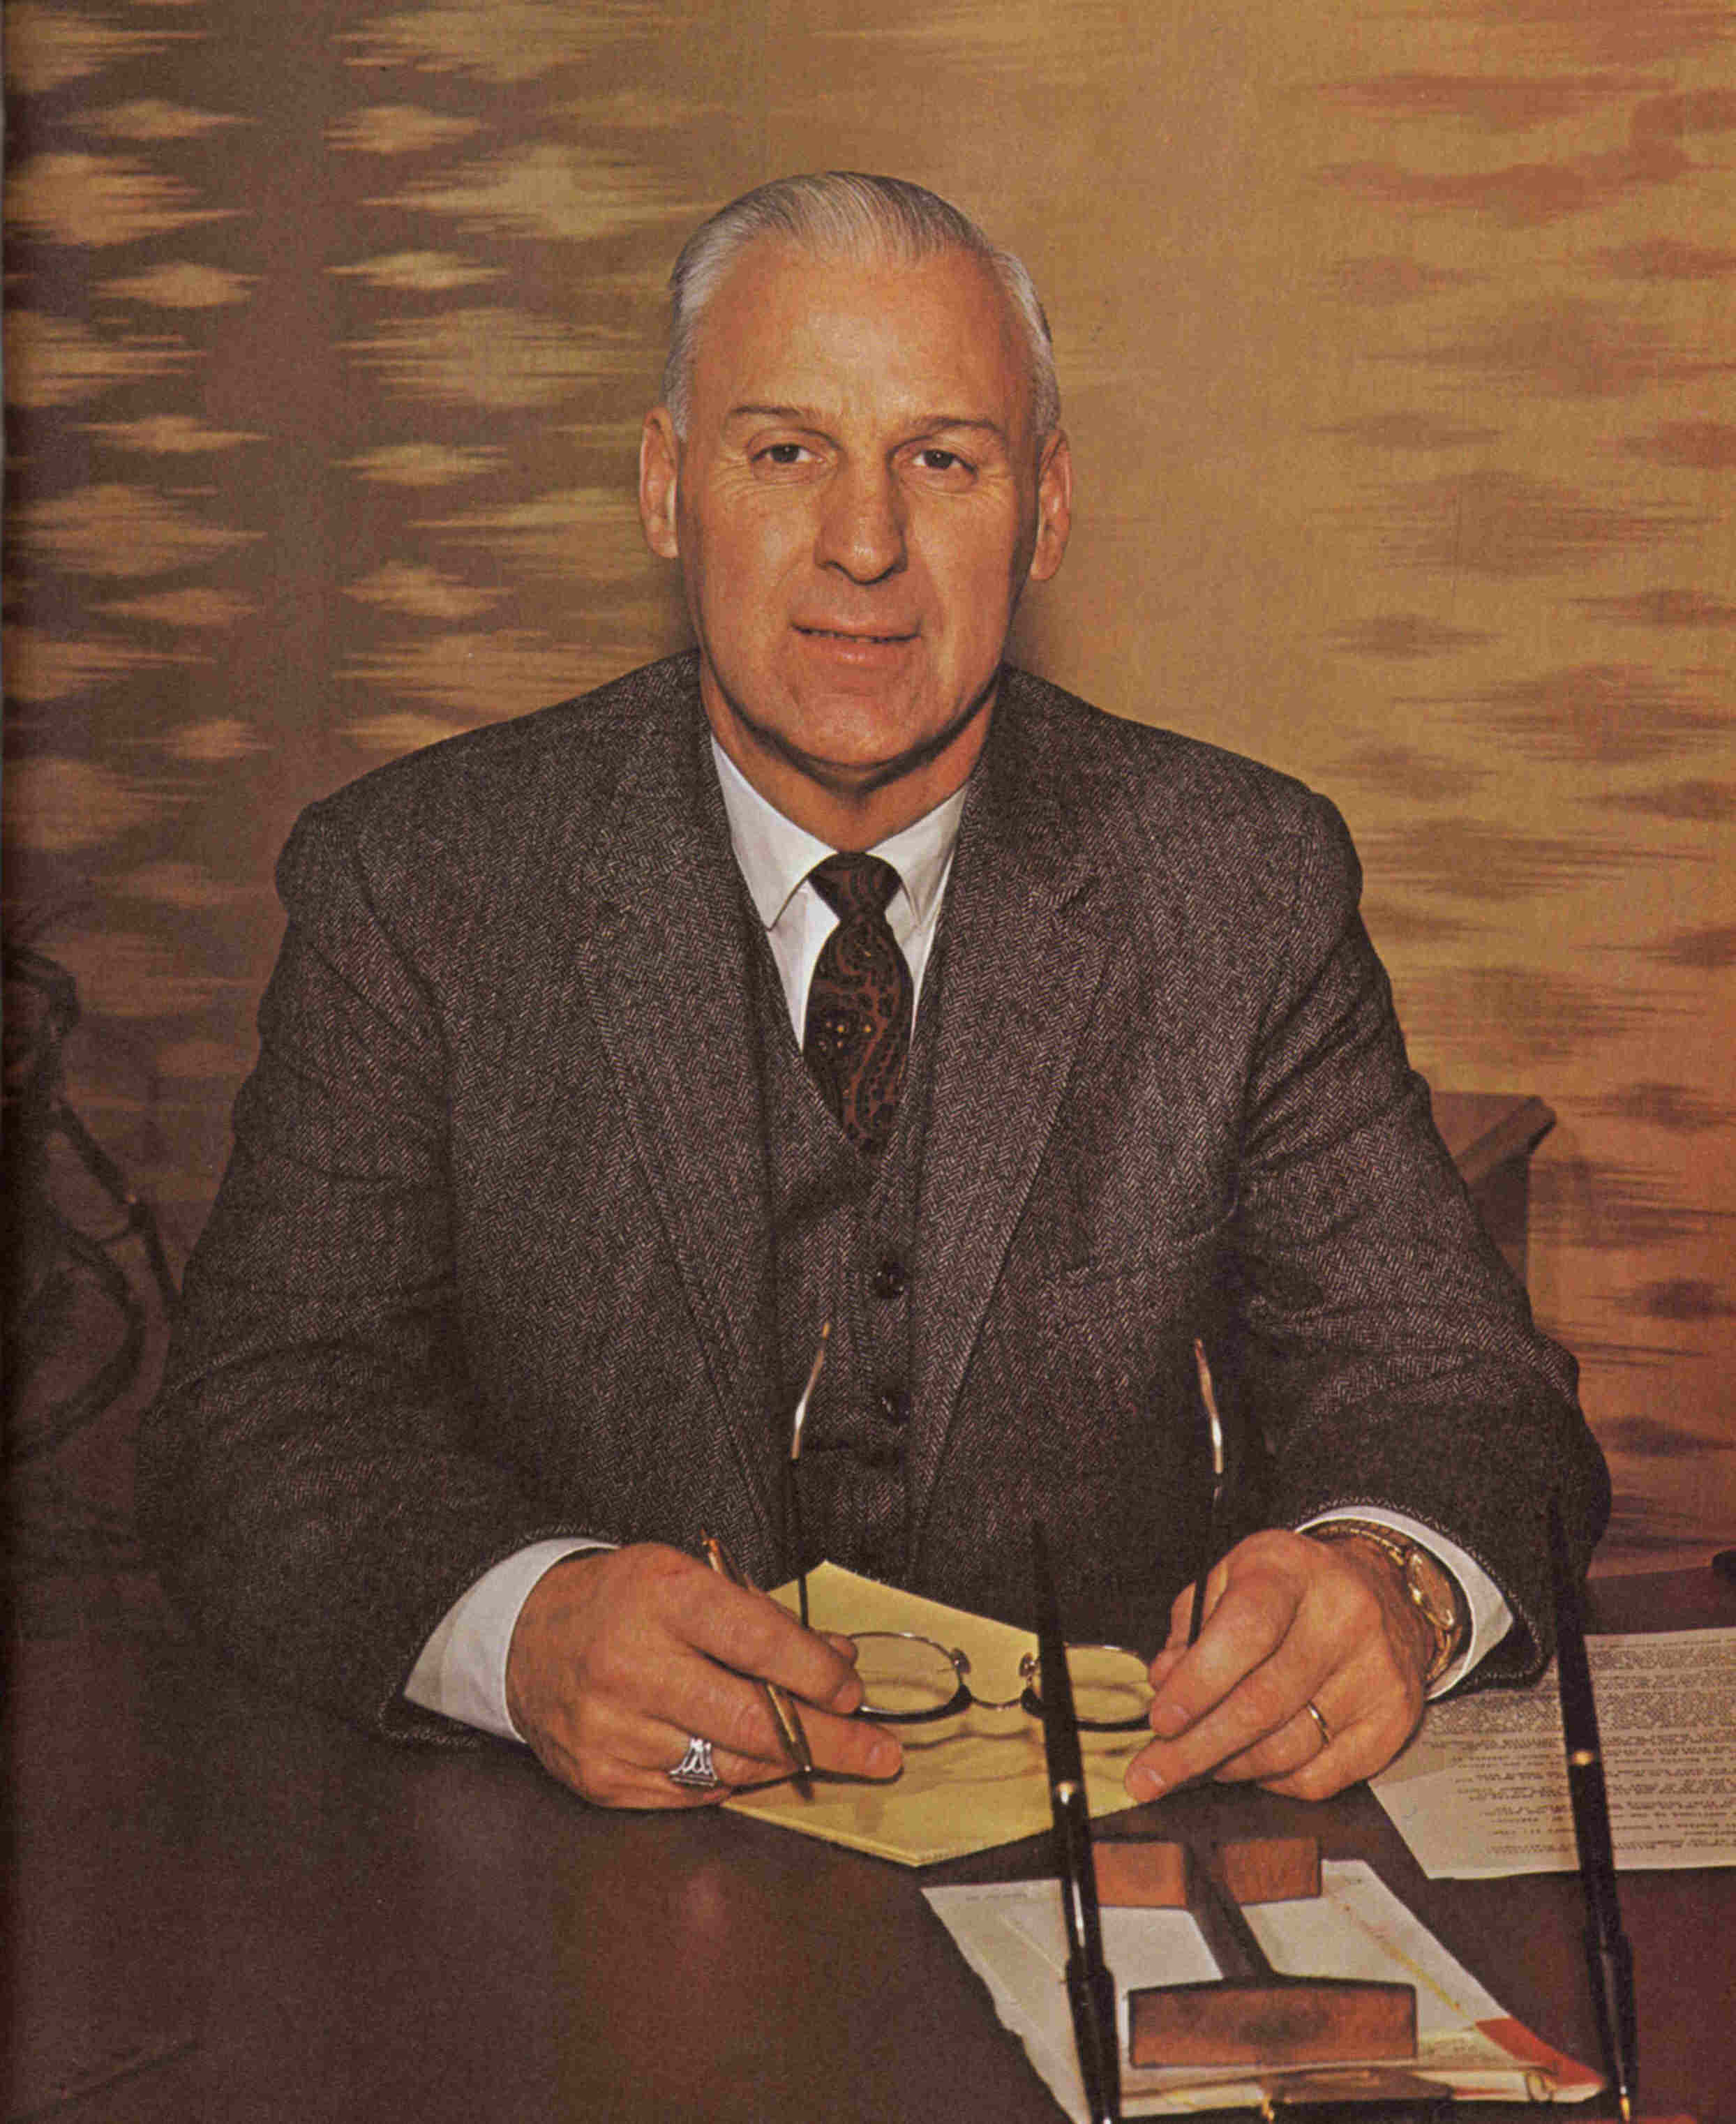 ECC College President James E. Shenton, 1968